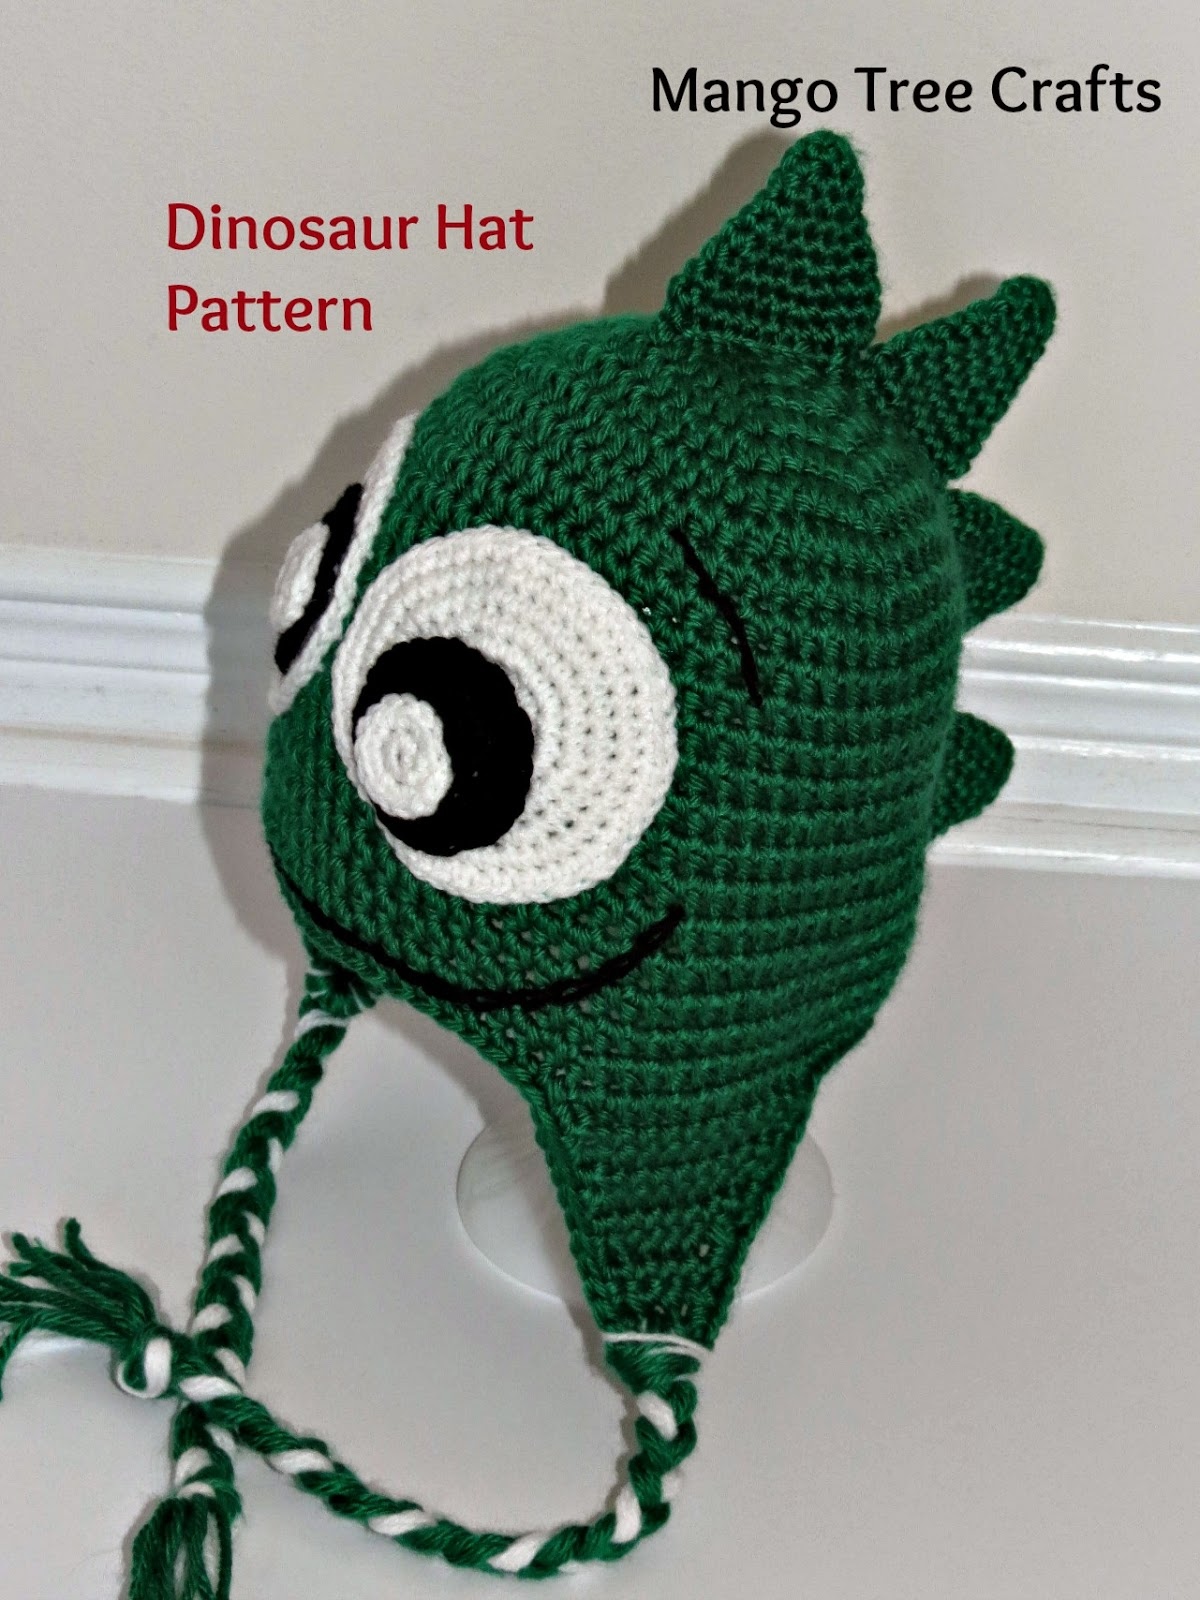 Crochet Pattern For Baby Dinosaur Hat : Mango Tree Crafts: Crochet Dinosaur Hat Pattern